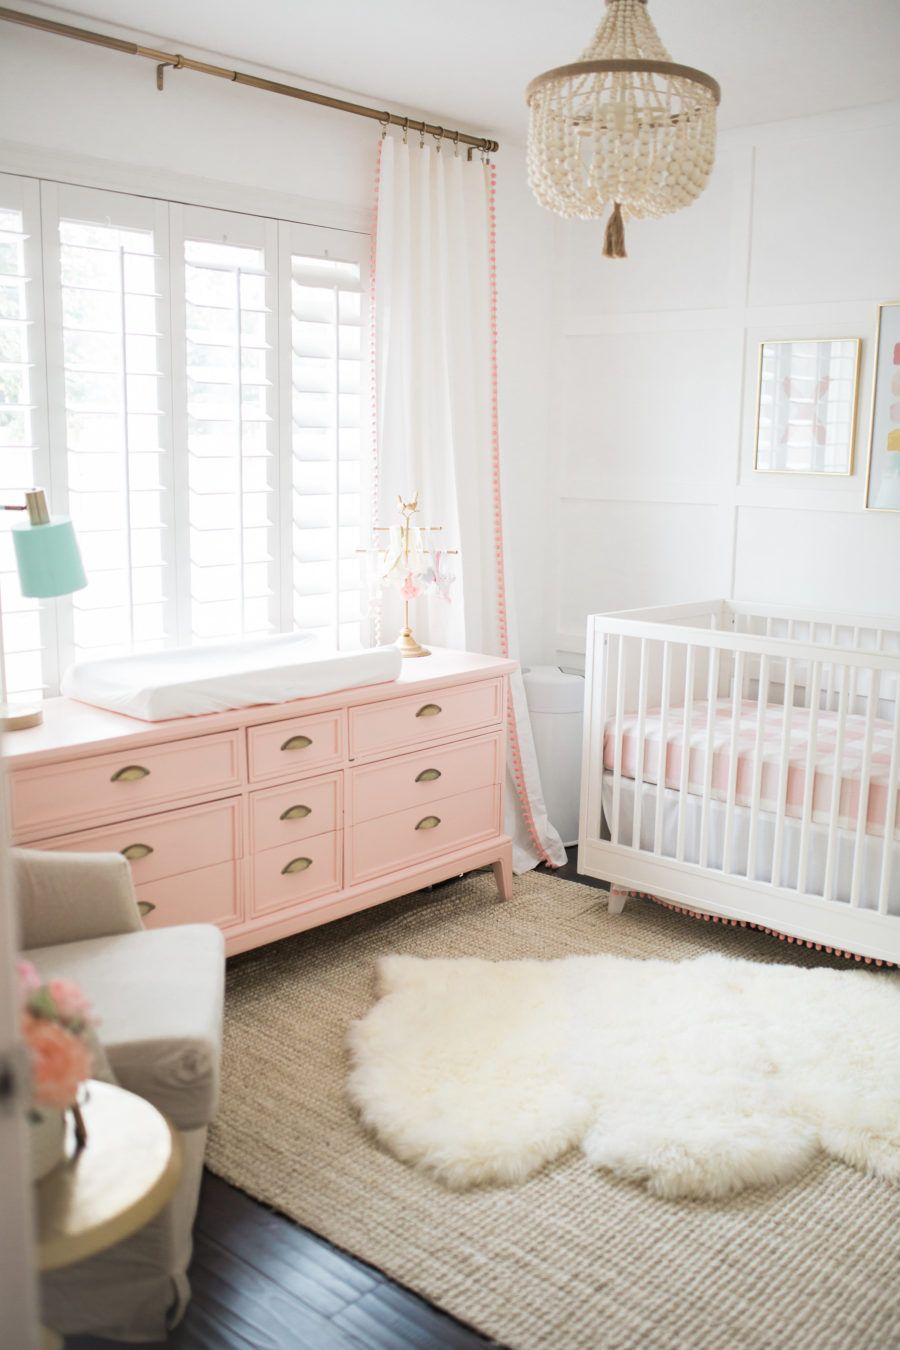 Bright White \u0026 Pastel Baby Girl Nursery Reveal | Blush pink, Pink ...